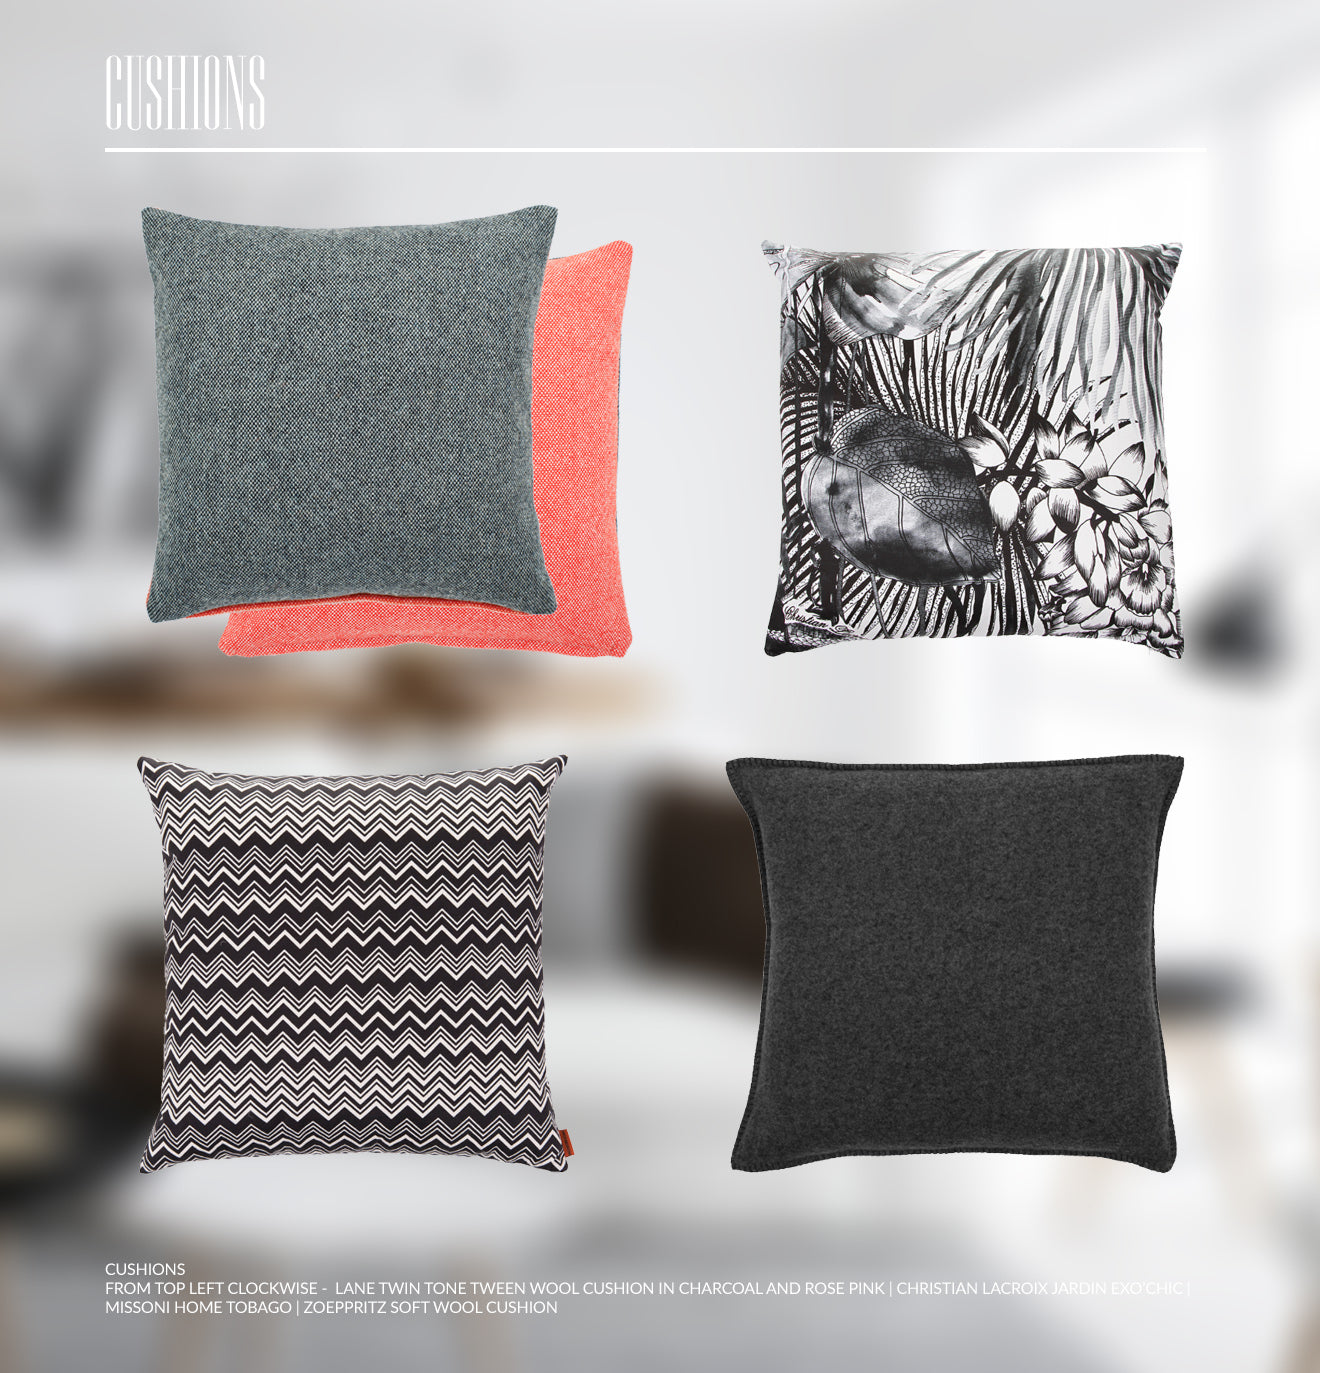 Luxury cushion design inspiration for a Scandinavian interior